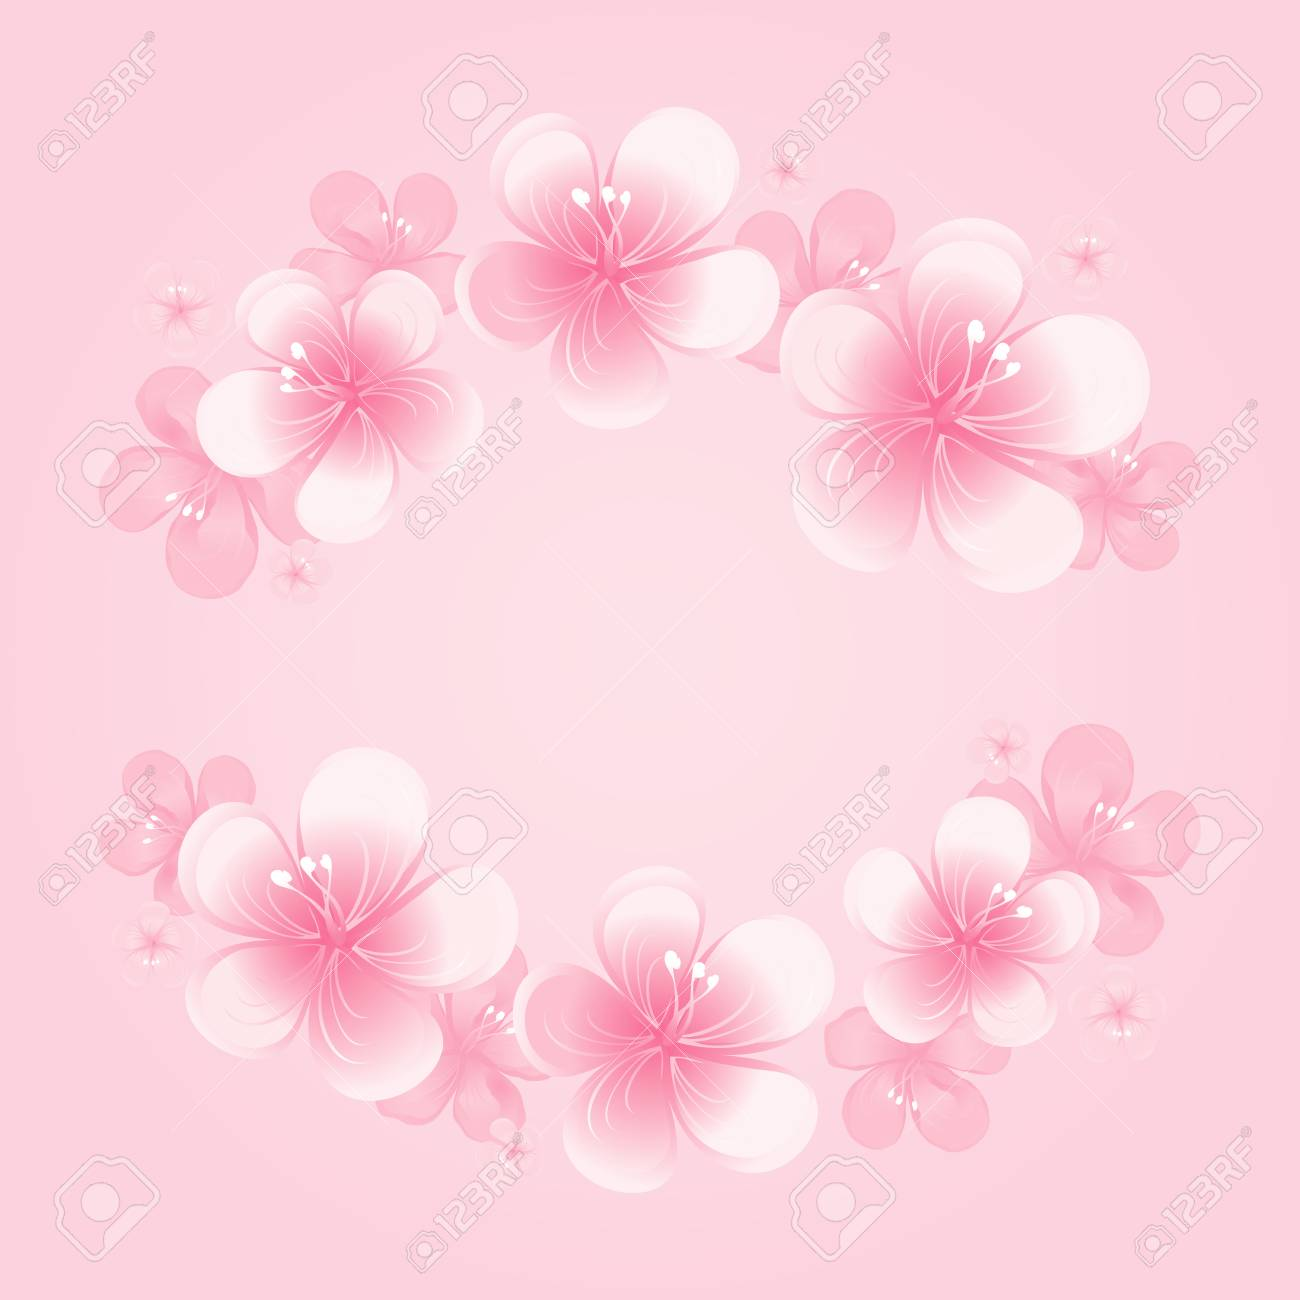 Pictures Of Light Pink Flowers Ibhalo Parkersydnorhistoric Org